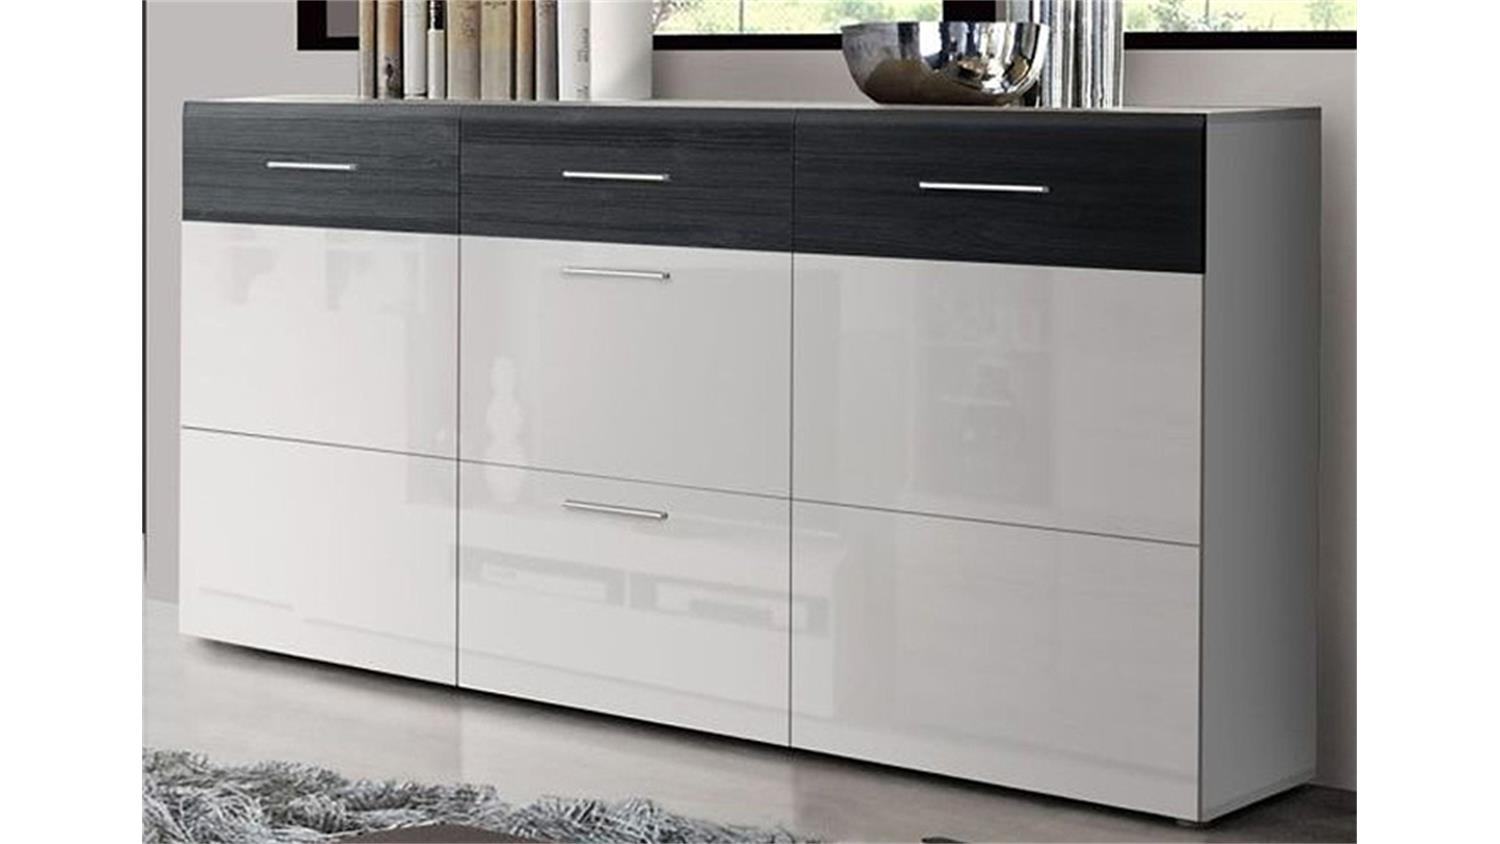 sideboard cortino kommode wei hochglanz schwarzeiche. Black Bedroom Furniture Sets. Home Design Ideas